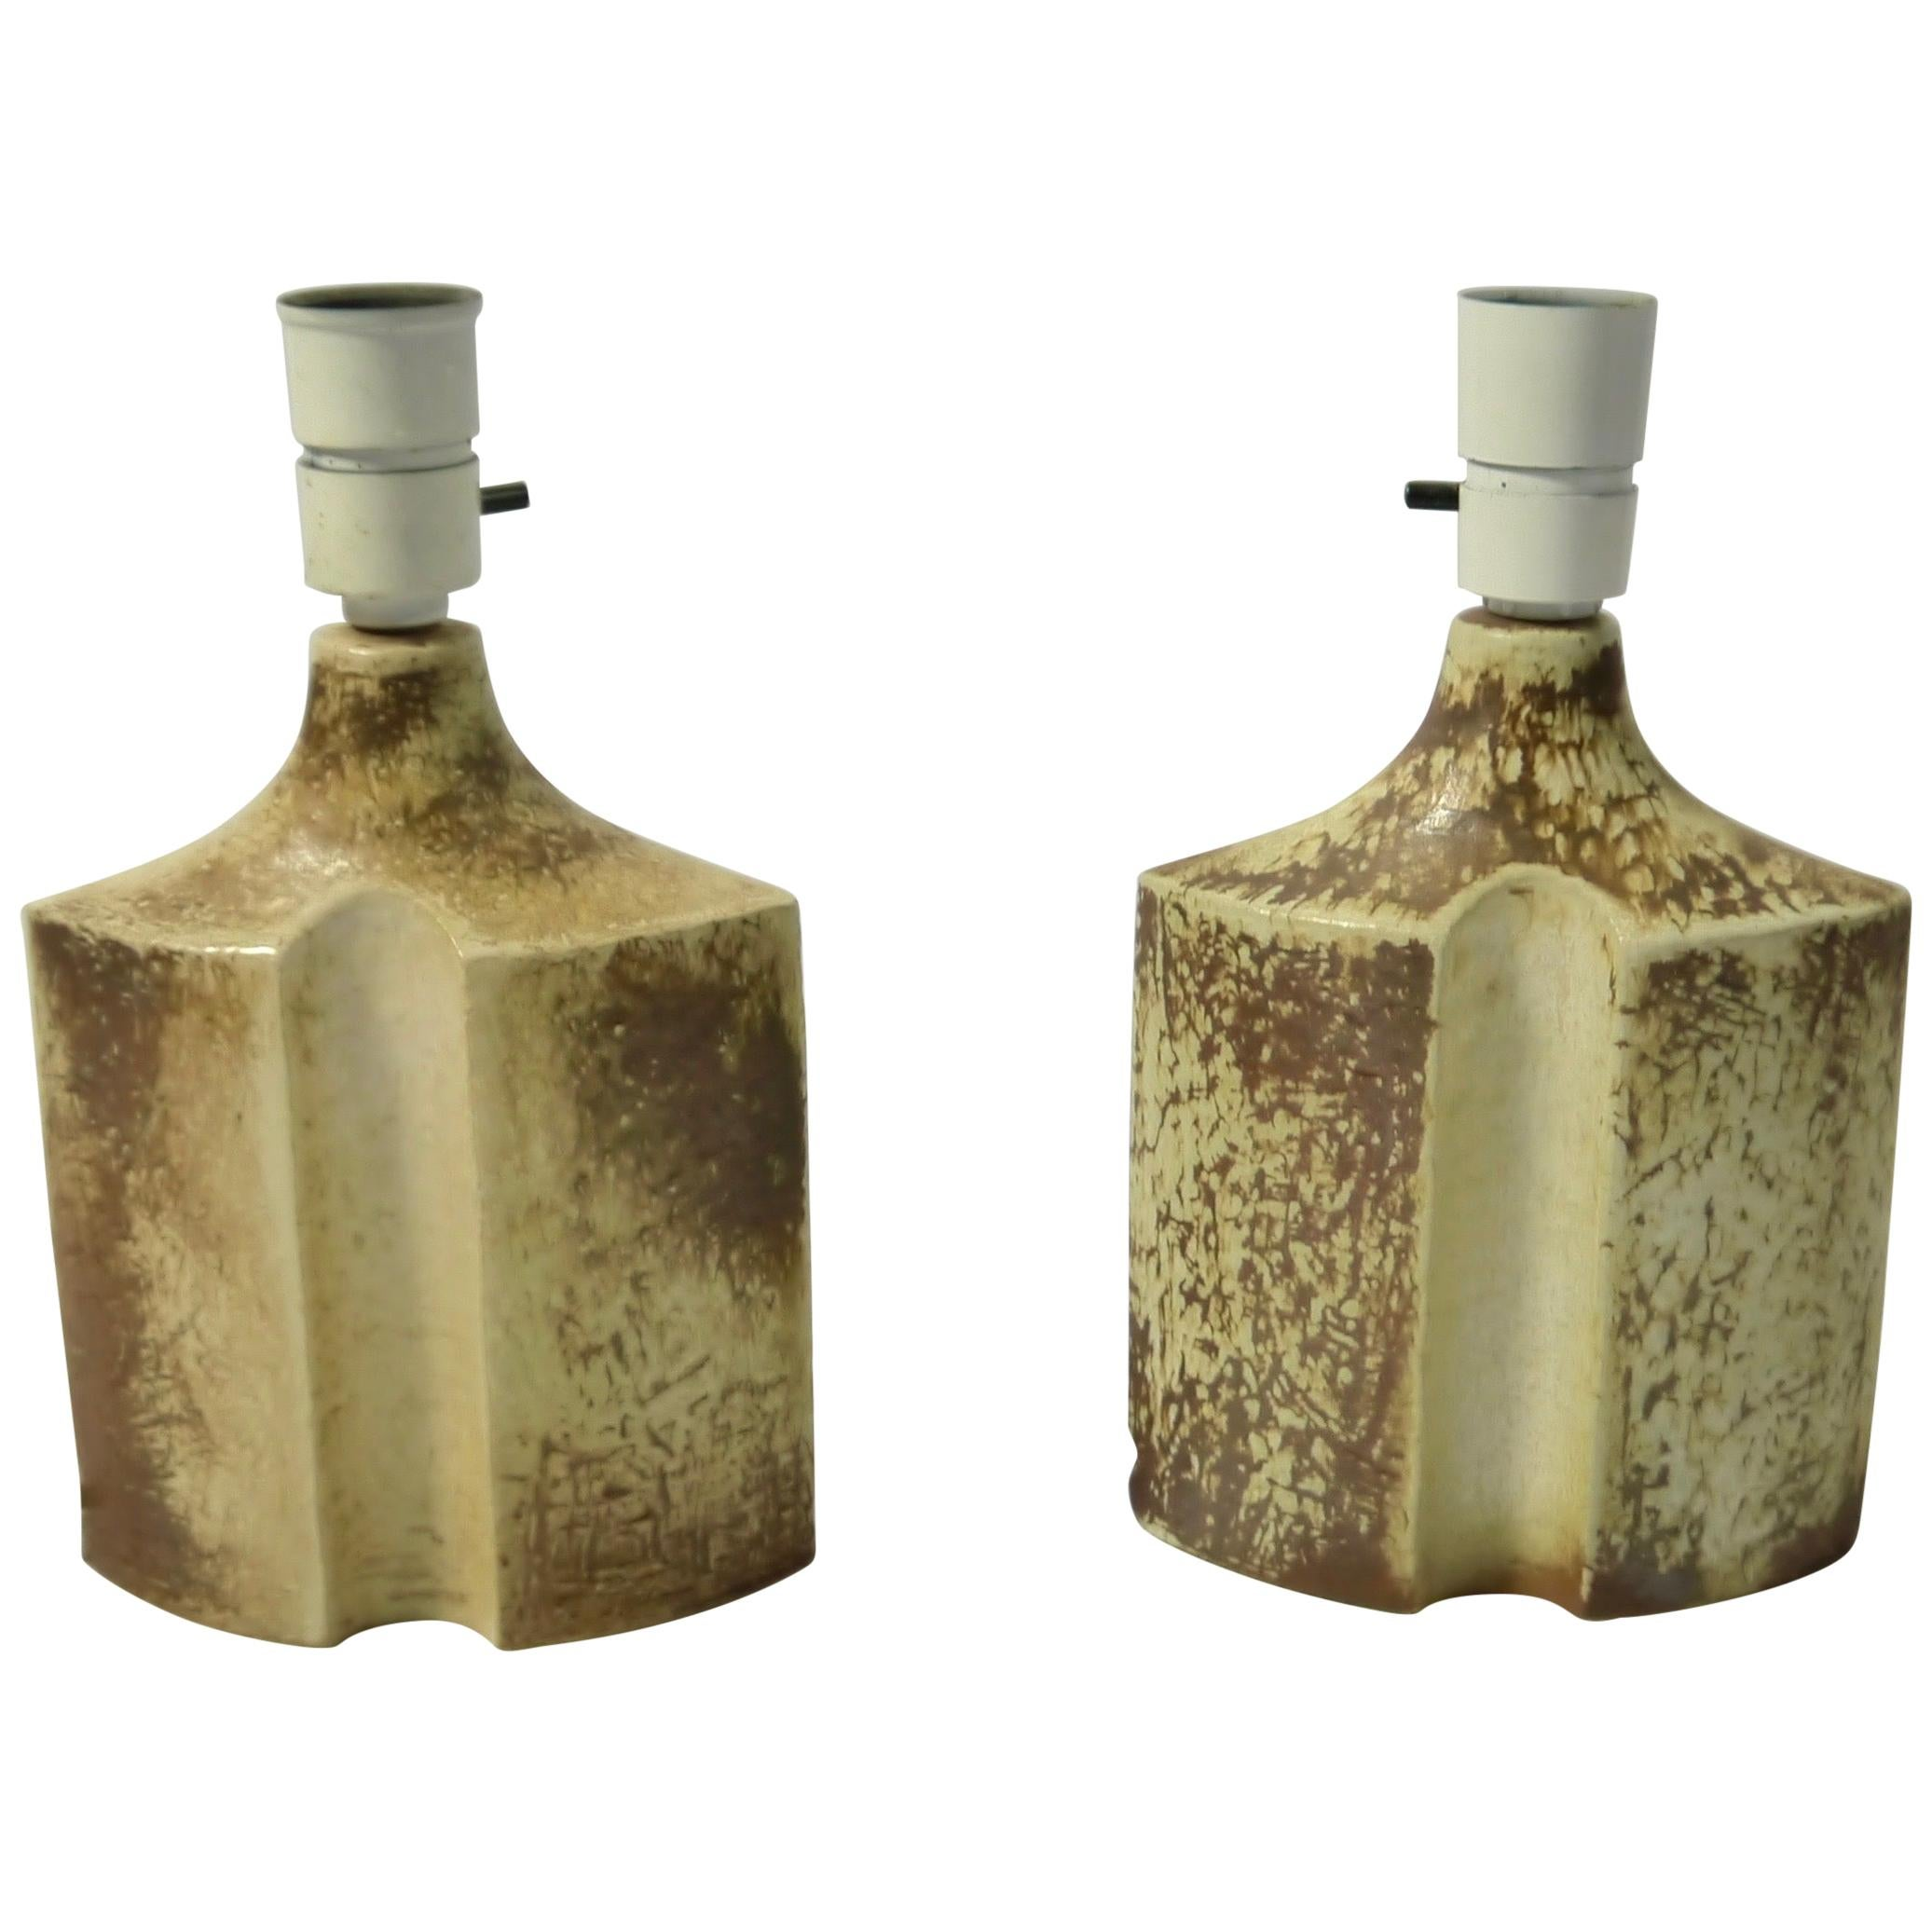 Pair of Sculptural Brutalist Danish Stoneware Lamps by Haico Nitzsche for Soholm